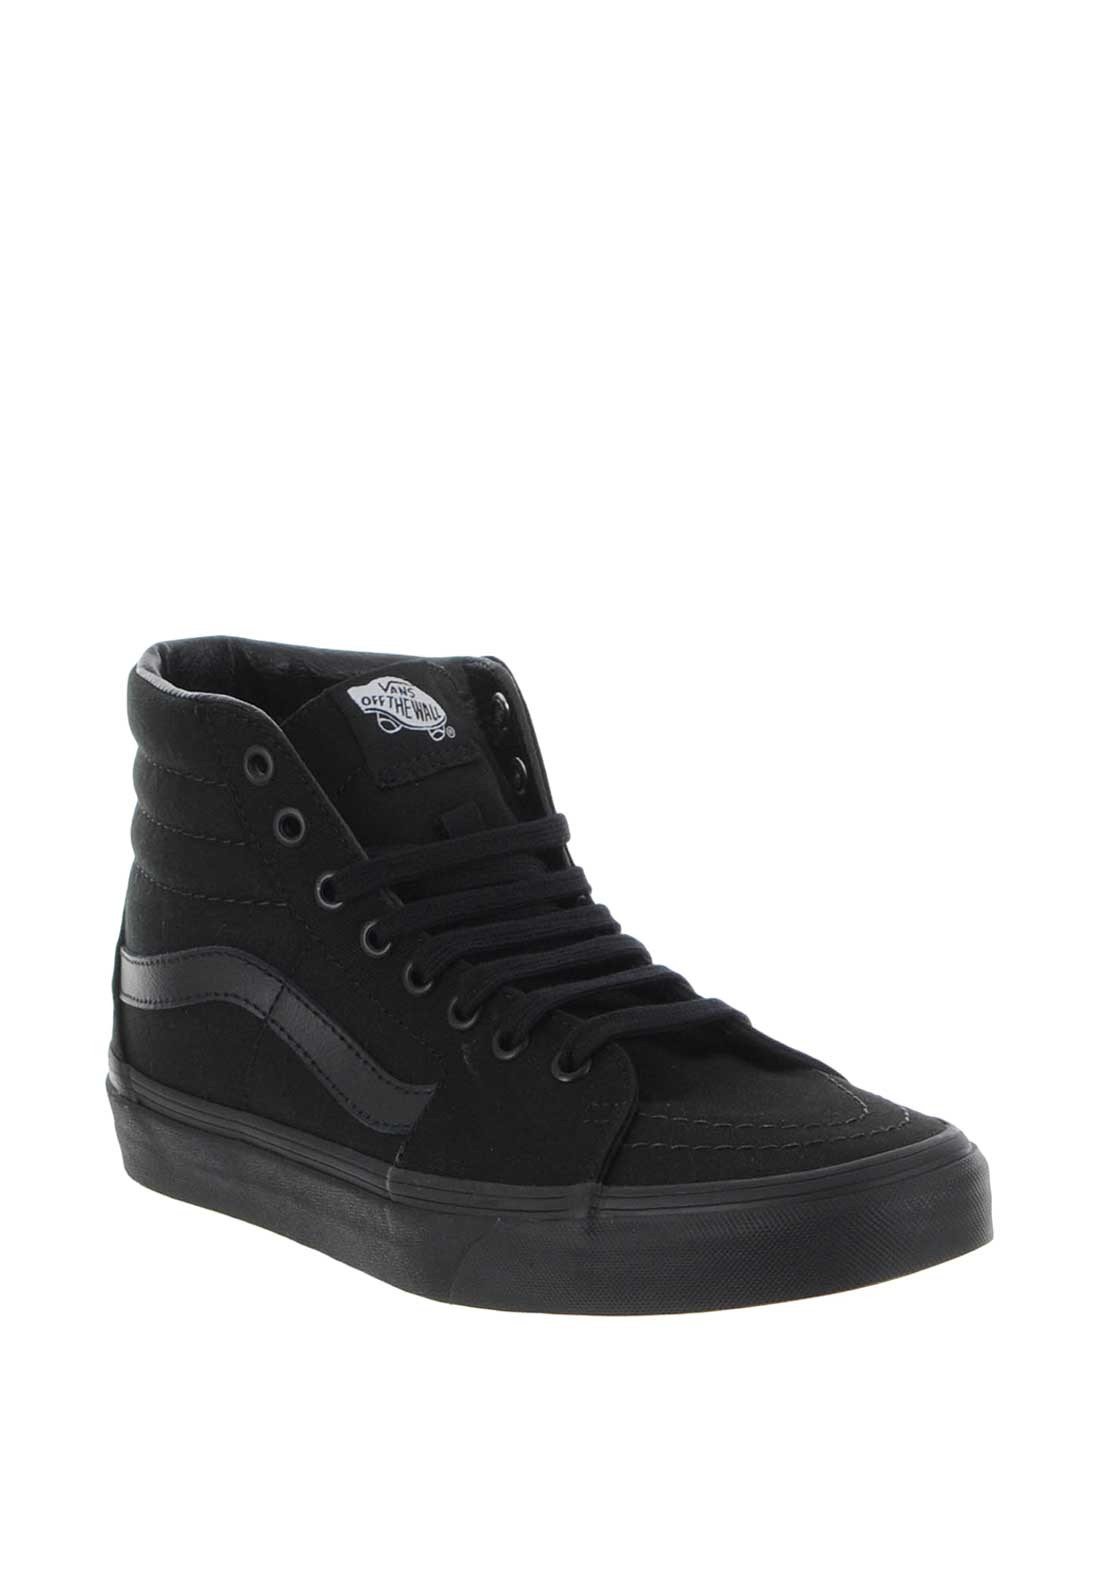 superior materials choose genuine buy sale Vans Old Skool High Top Trainers, Black